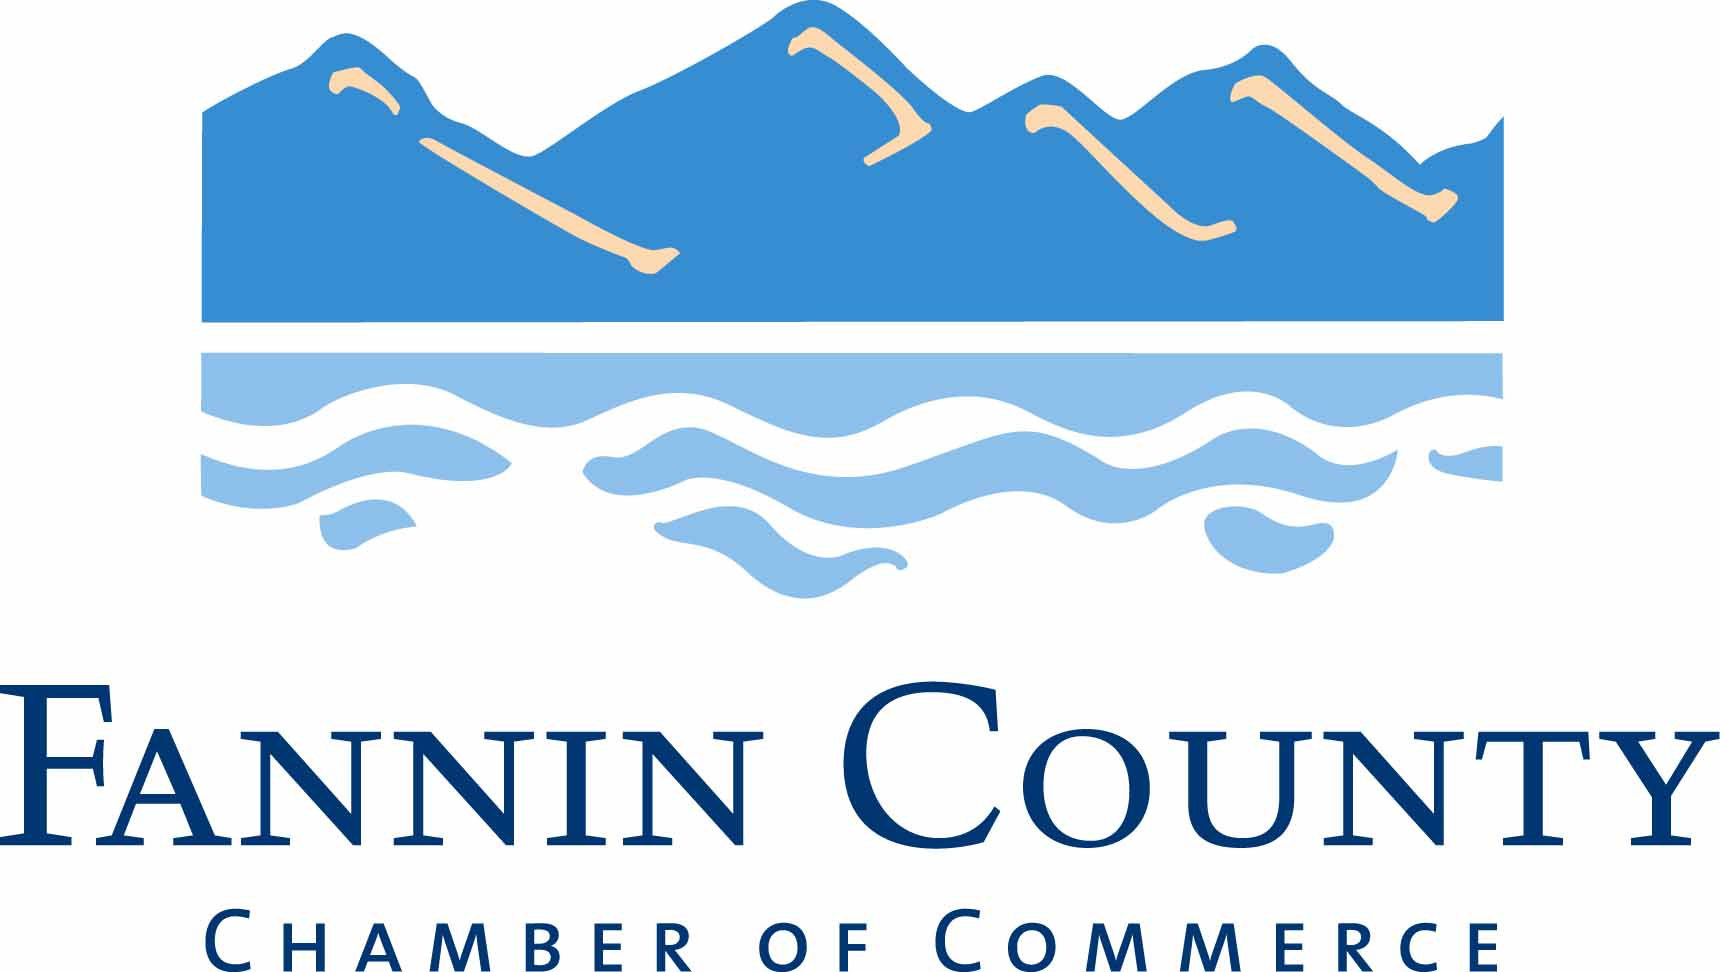 Fannin County GA (Blue Ridge Area) Chamber of Commerce logo link